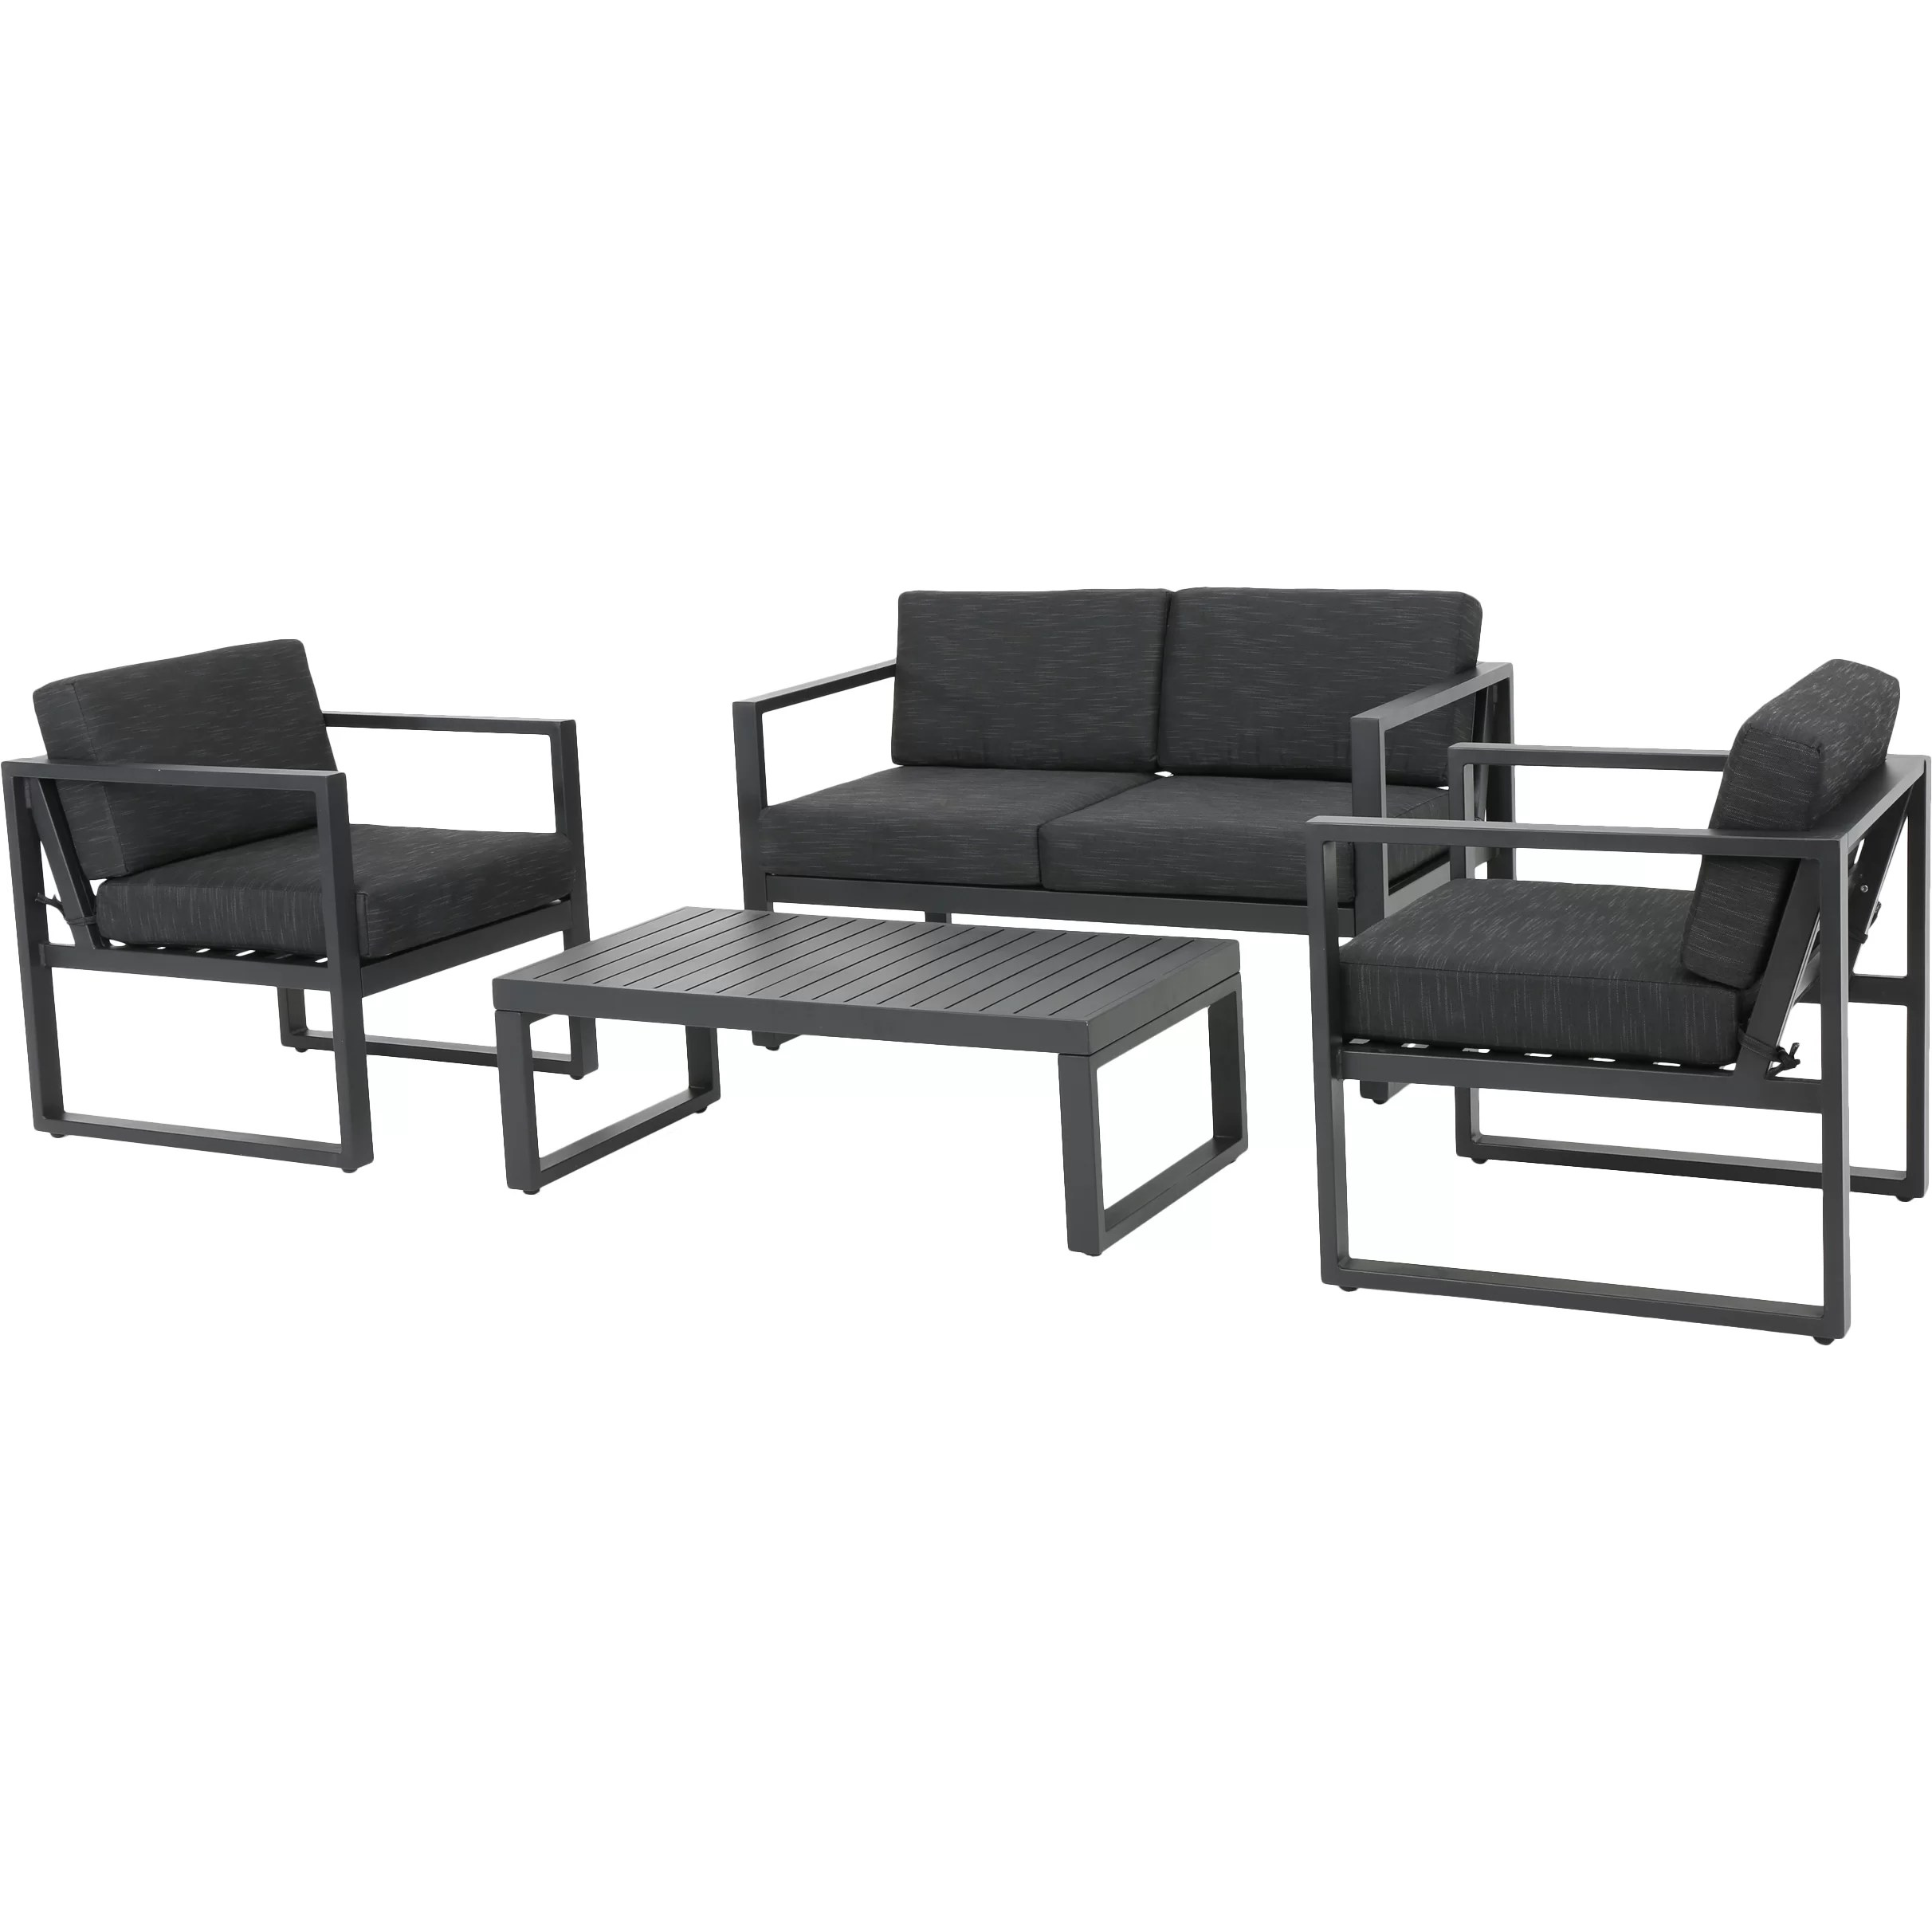 black aluminum outdoor sofa chaise lounge double bed mercury row acree 4 piece deep seating group with cushion